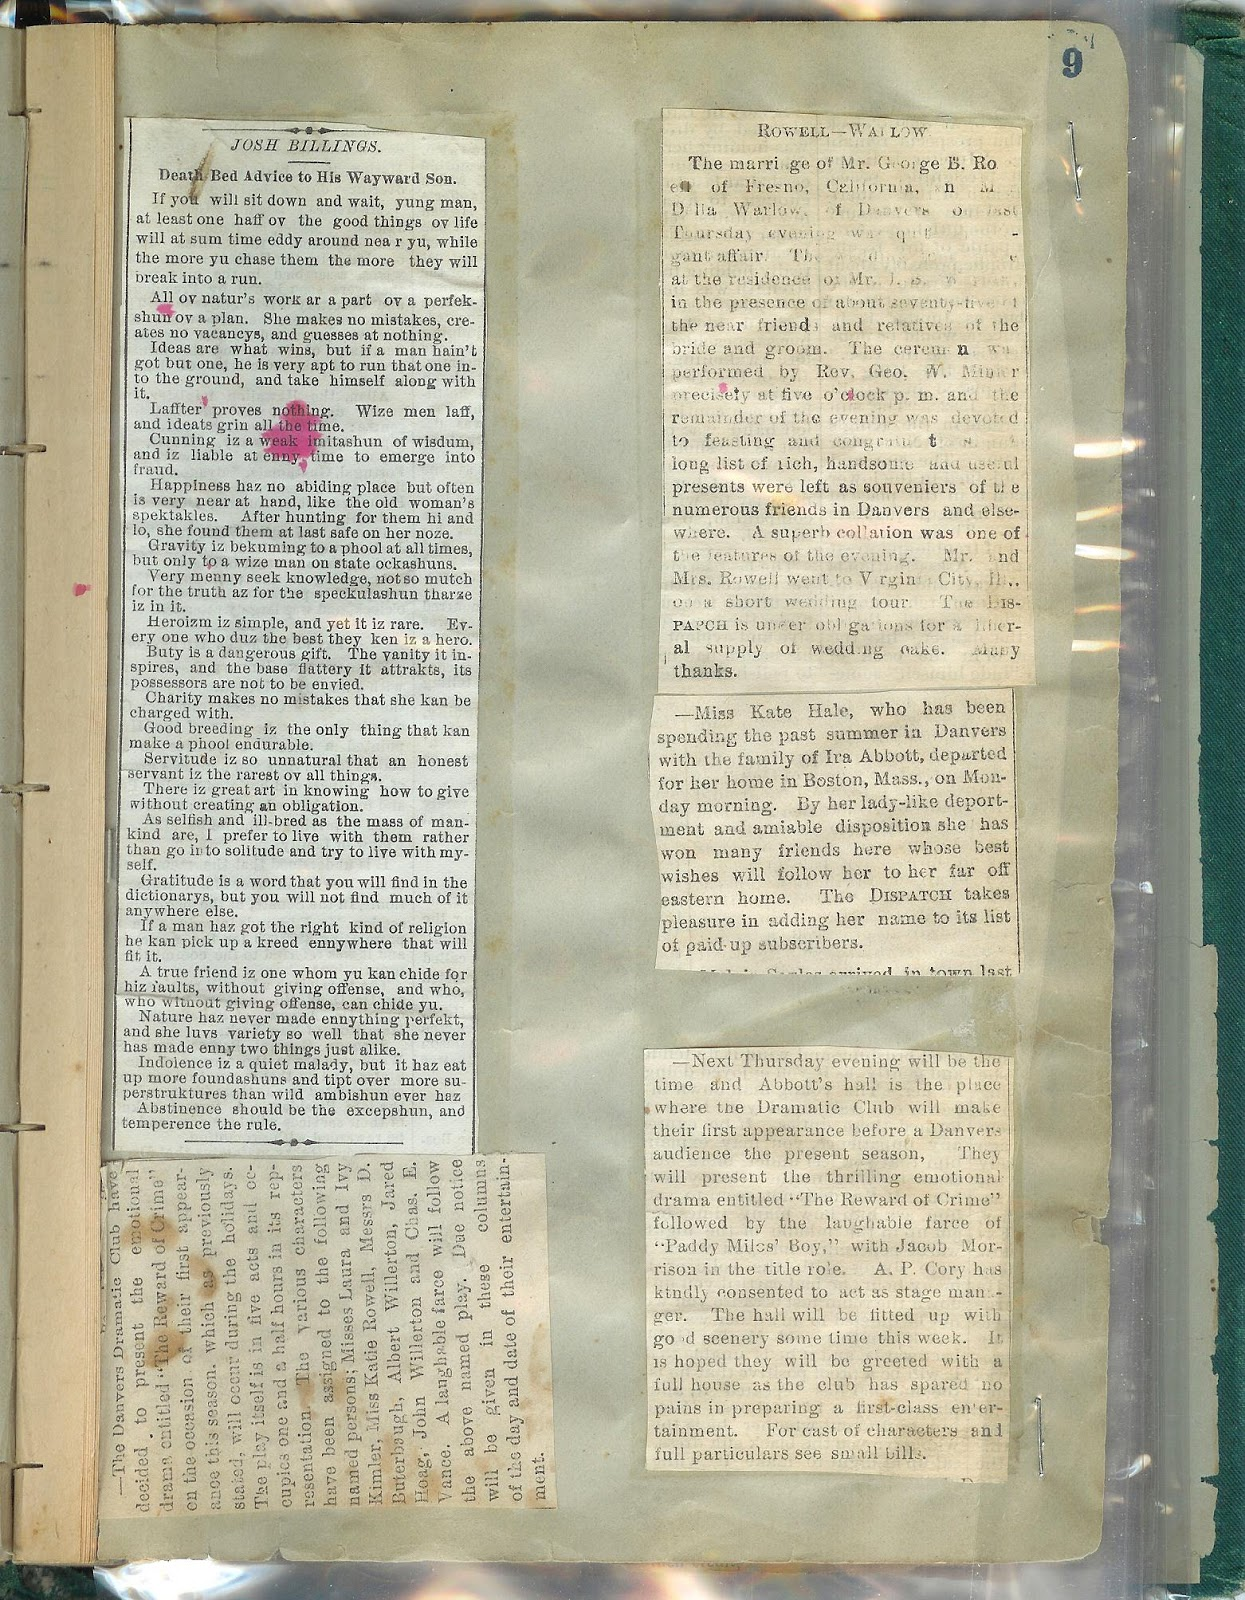 How to scrapbook newspaper clippings - Inside His Scrapbook Begins With Newspaper Clippings Of Poetry And Notices Of Plays Presented By The Danvers Dramatic Club